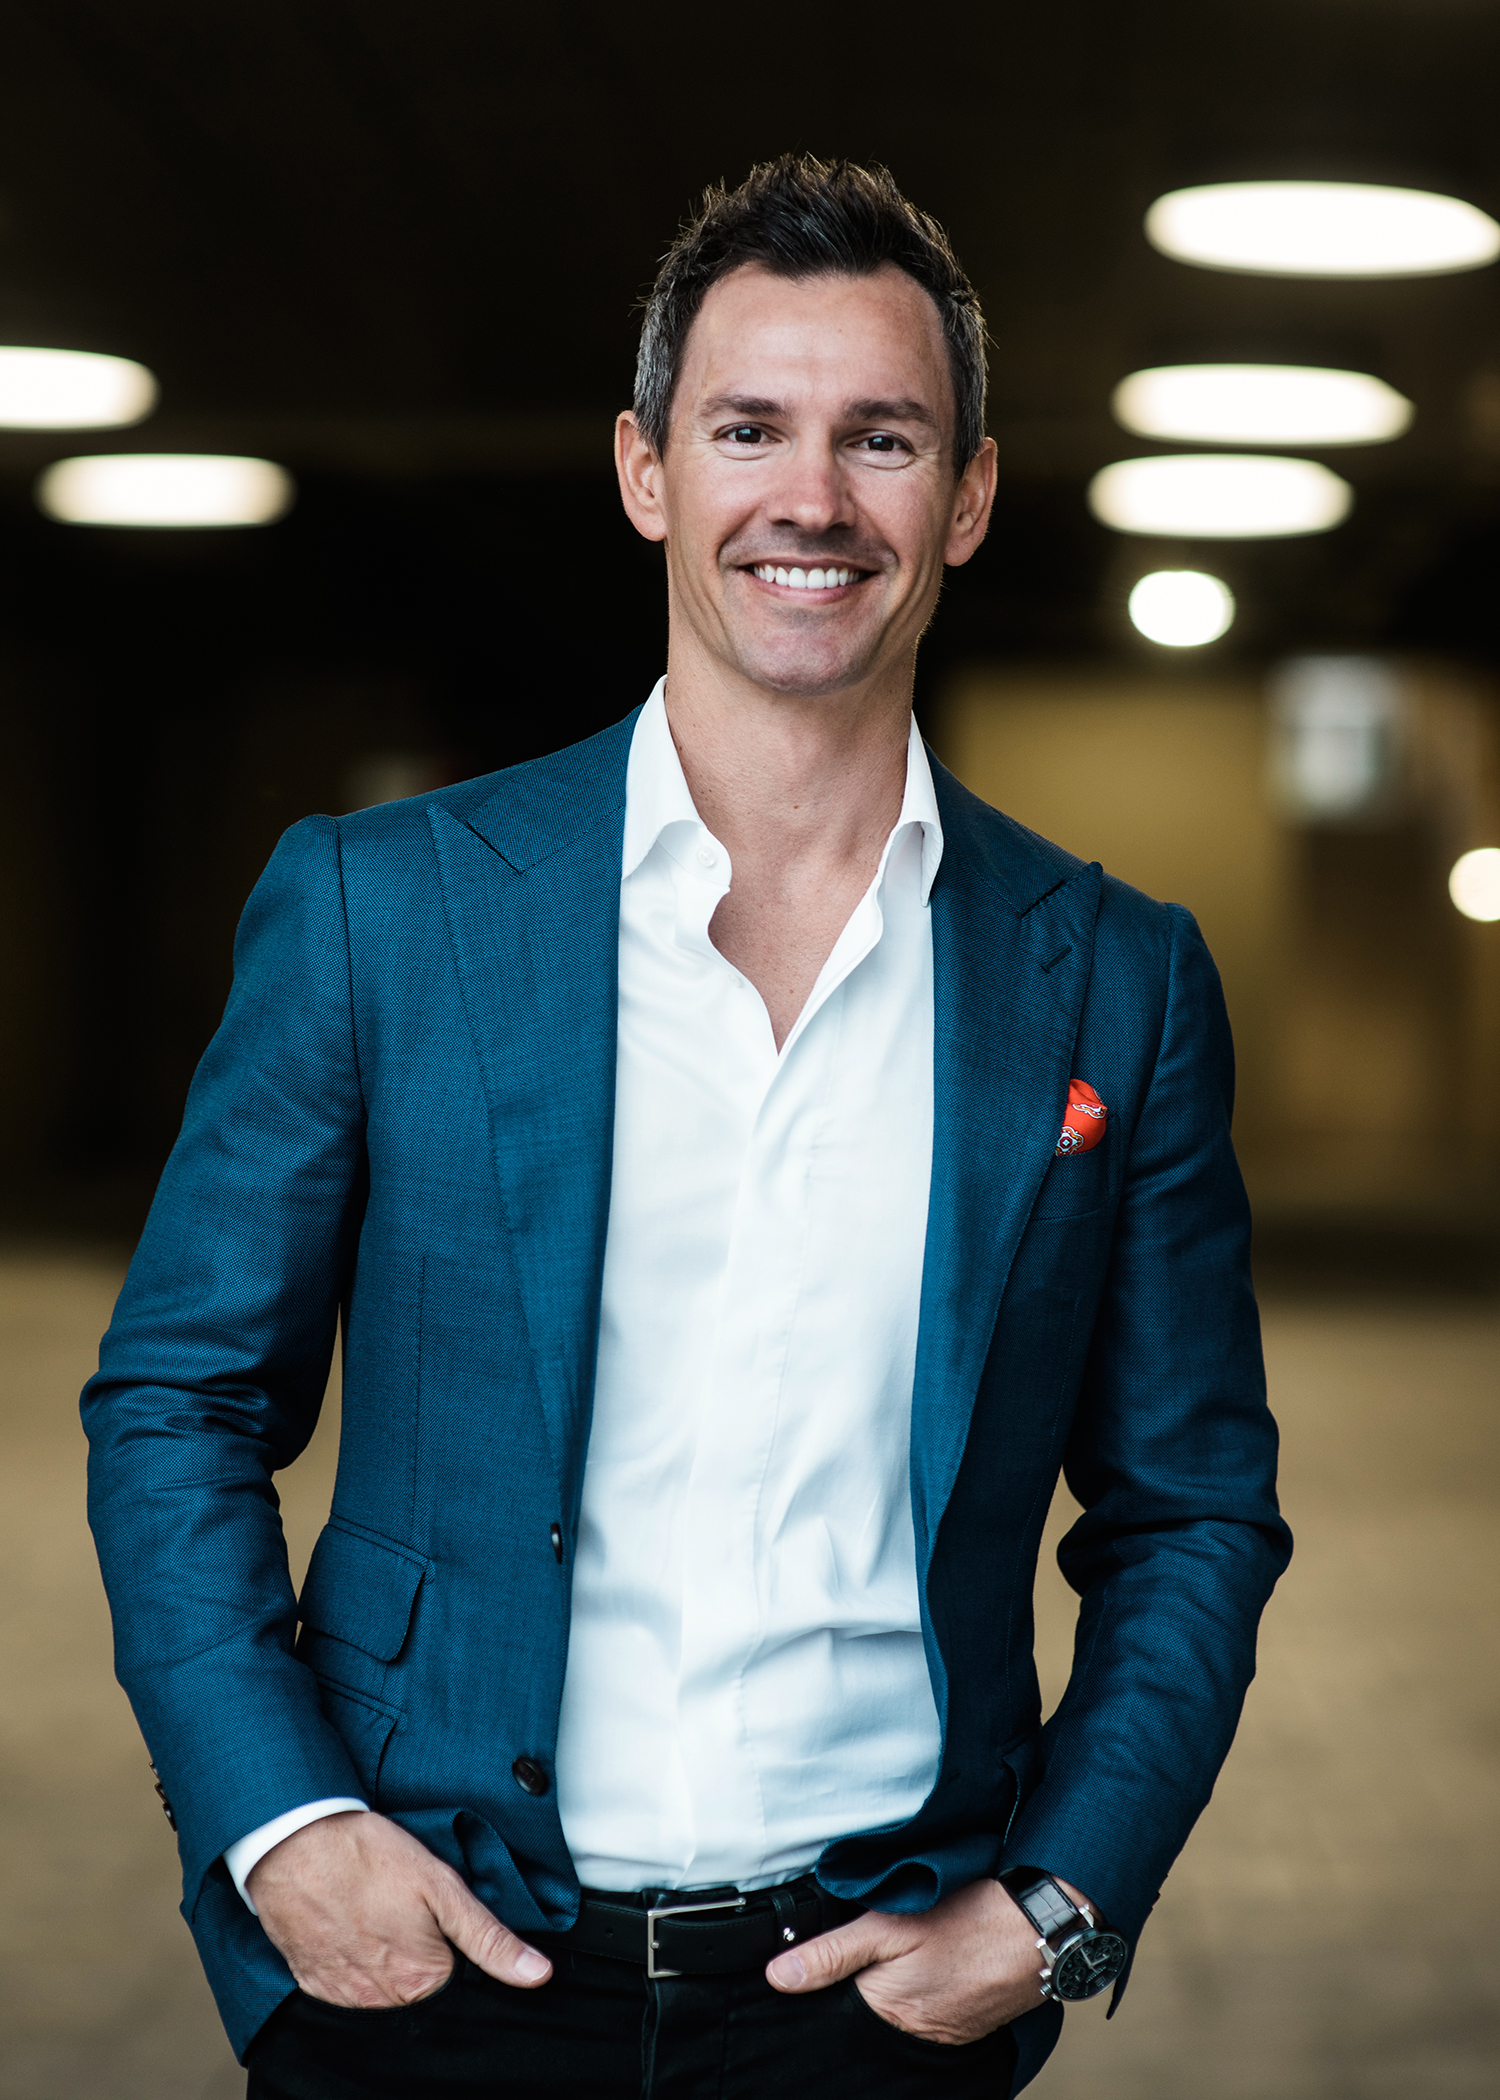 New ÄZ Haircare Launching with Thoughtful Strategy and Industry Veteran Leading the Way